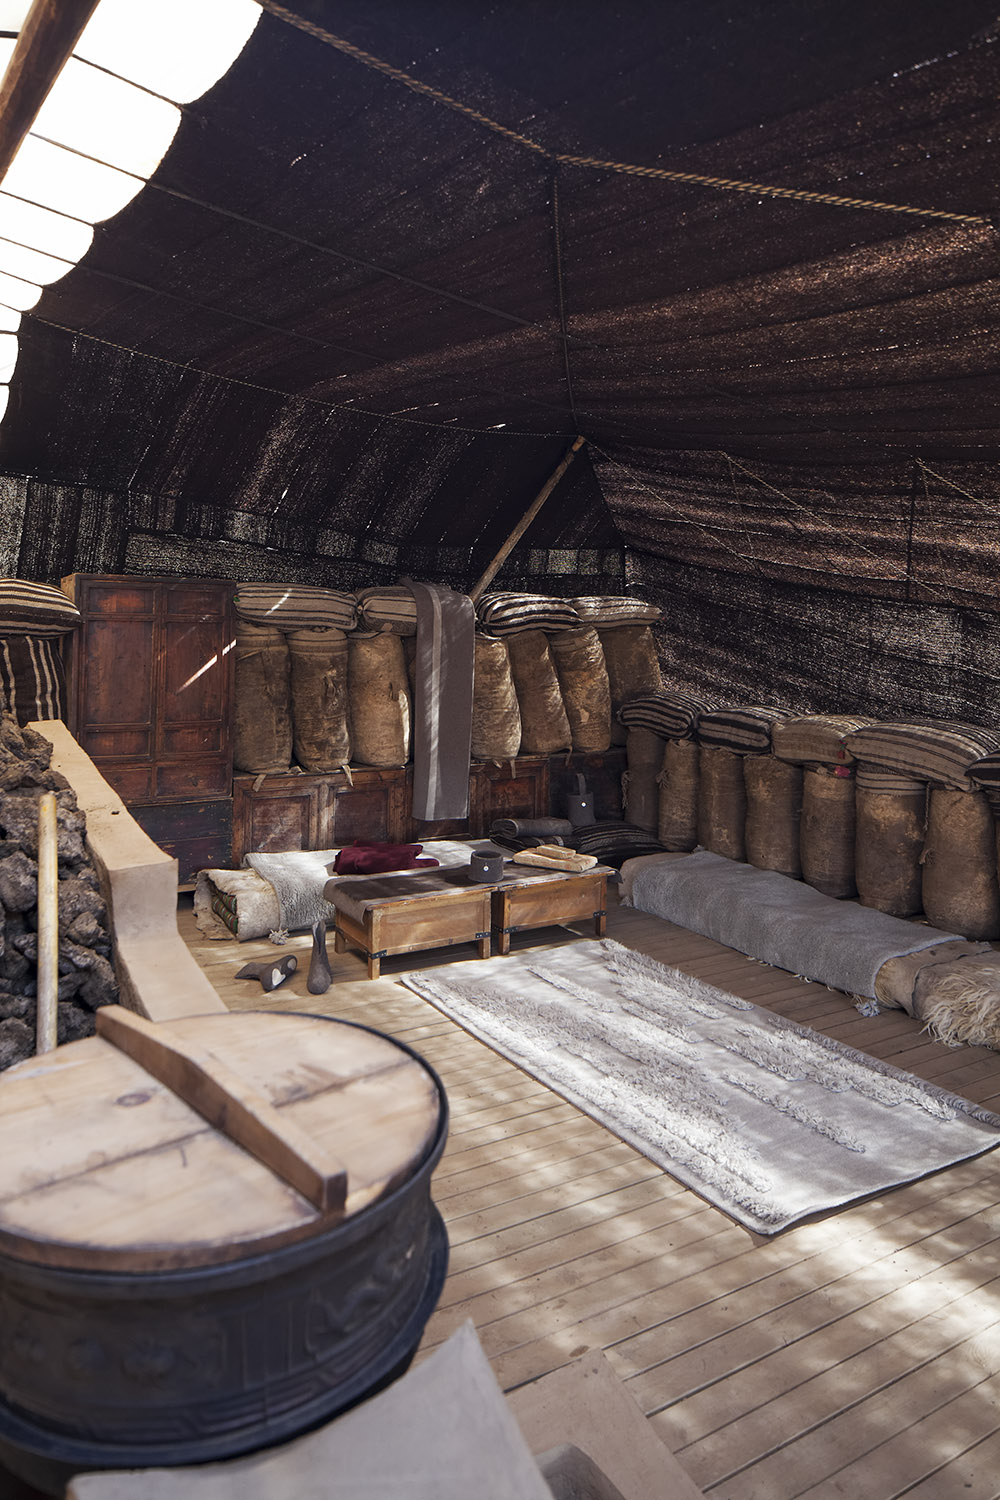 Traditional tent interior with Norlha soft furnishings, Lungta Cooperative, Amdo, Tibet